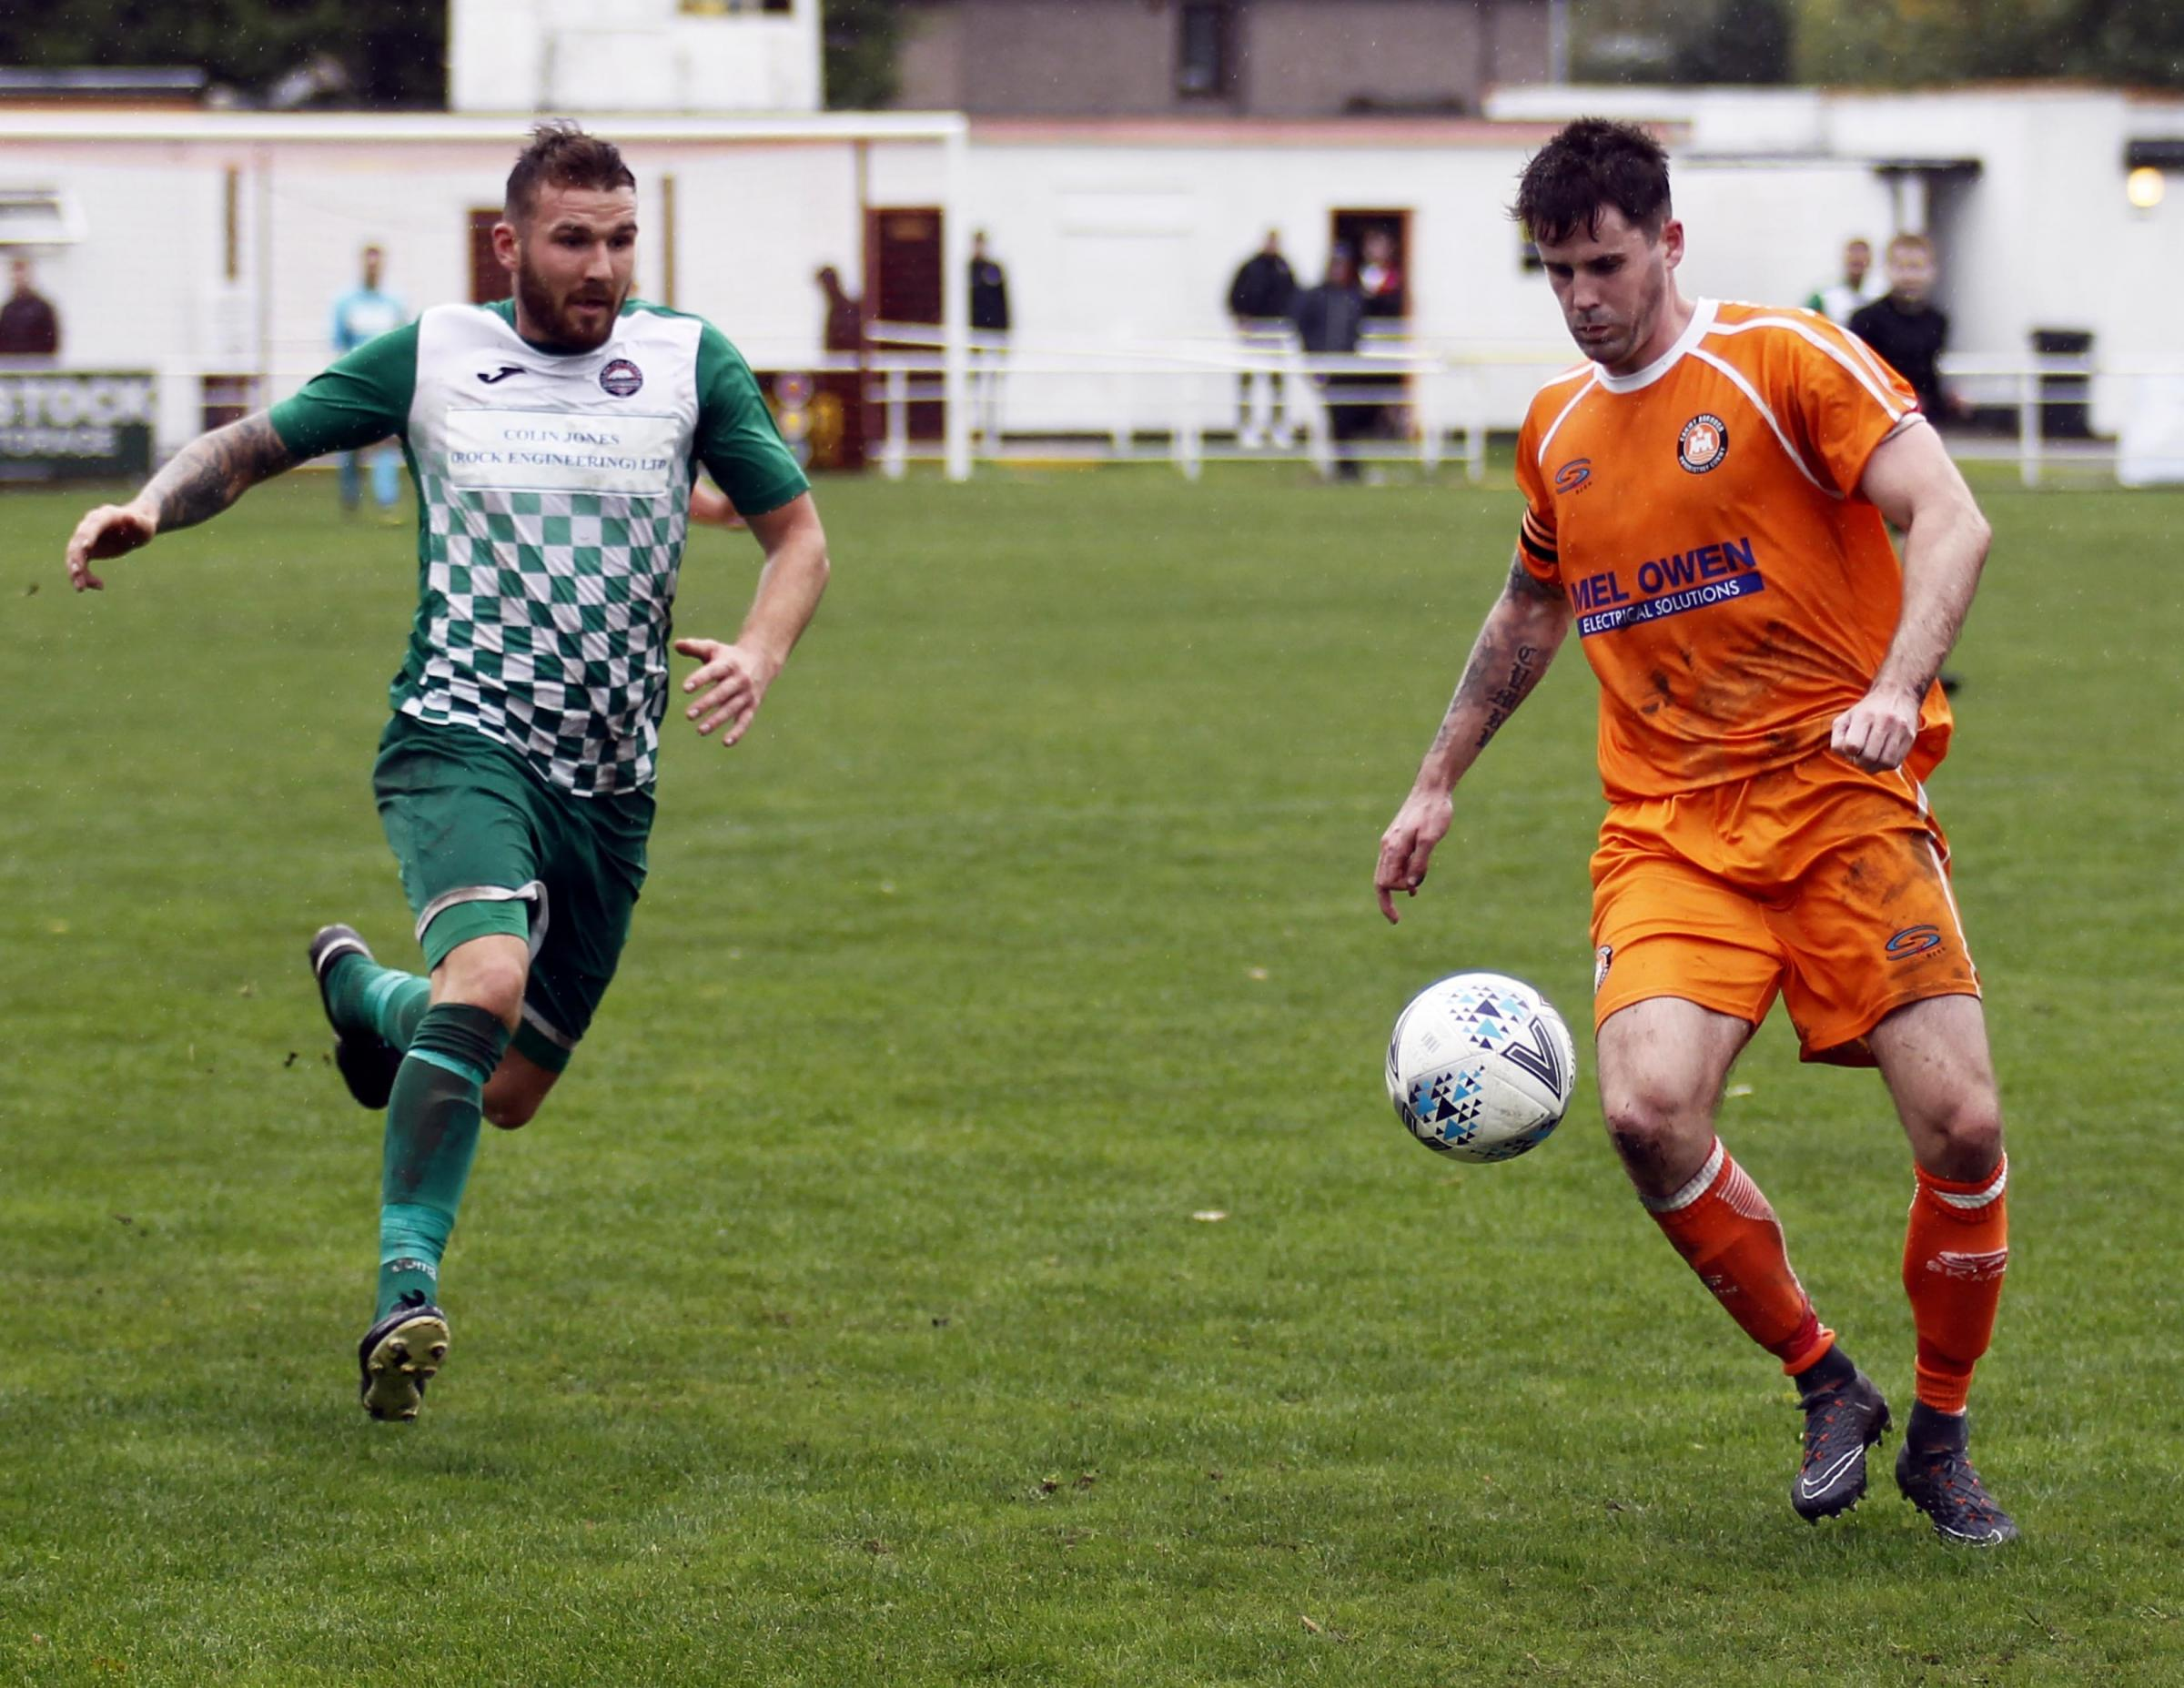 Conwy Borough skipper Gerwyn Jones has turned down a move to Bangor City (Photo: Dave Thomas)